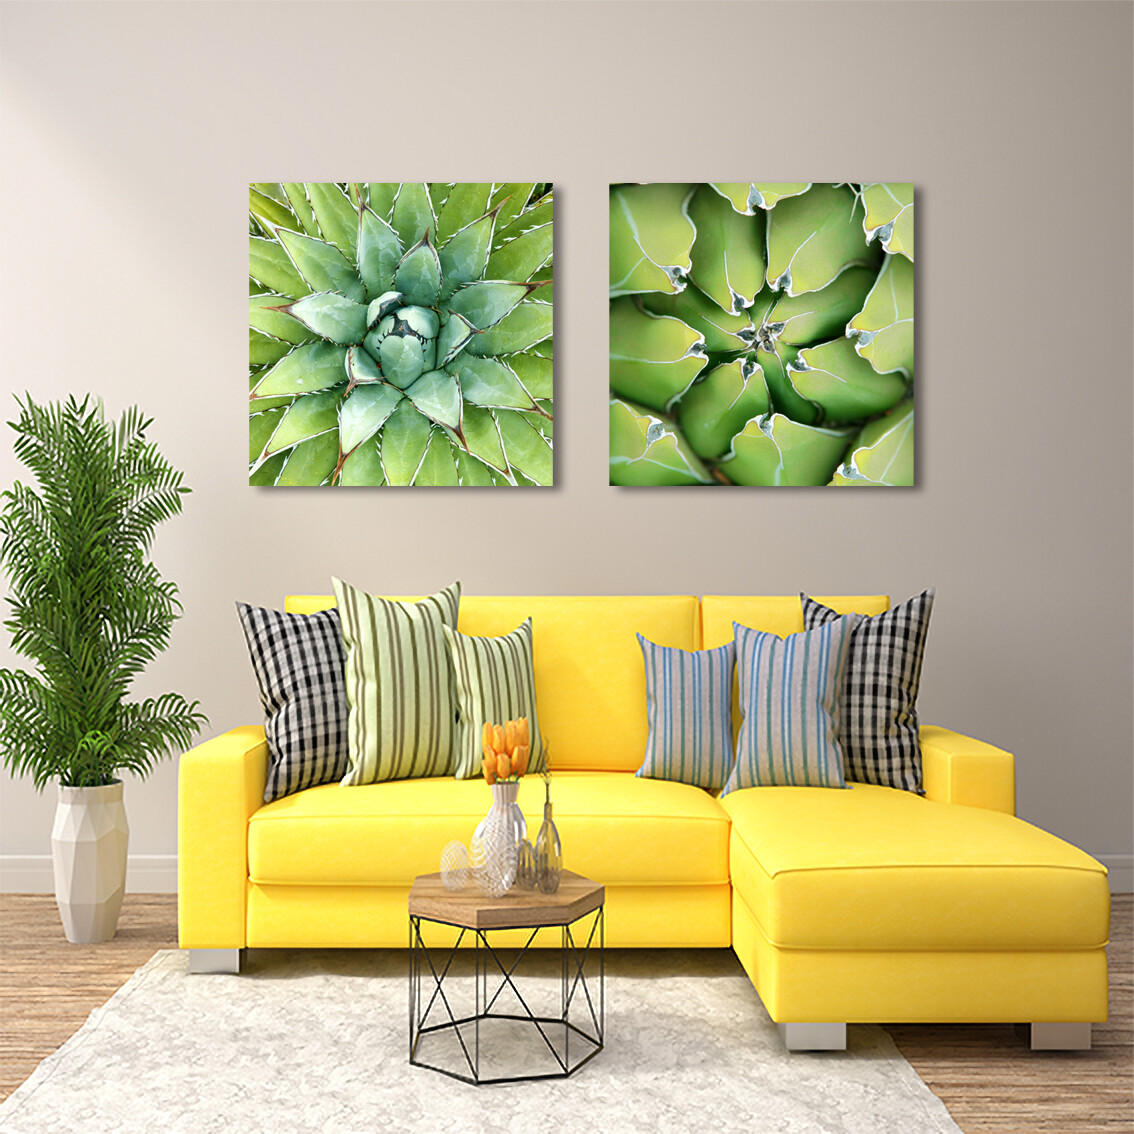 Agave Leaves Green | Printed on Frameless Acrylic Glass | With Aluminium Backing Frame Ready to Hang